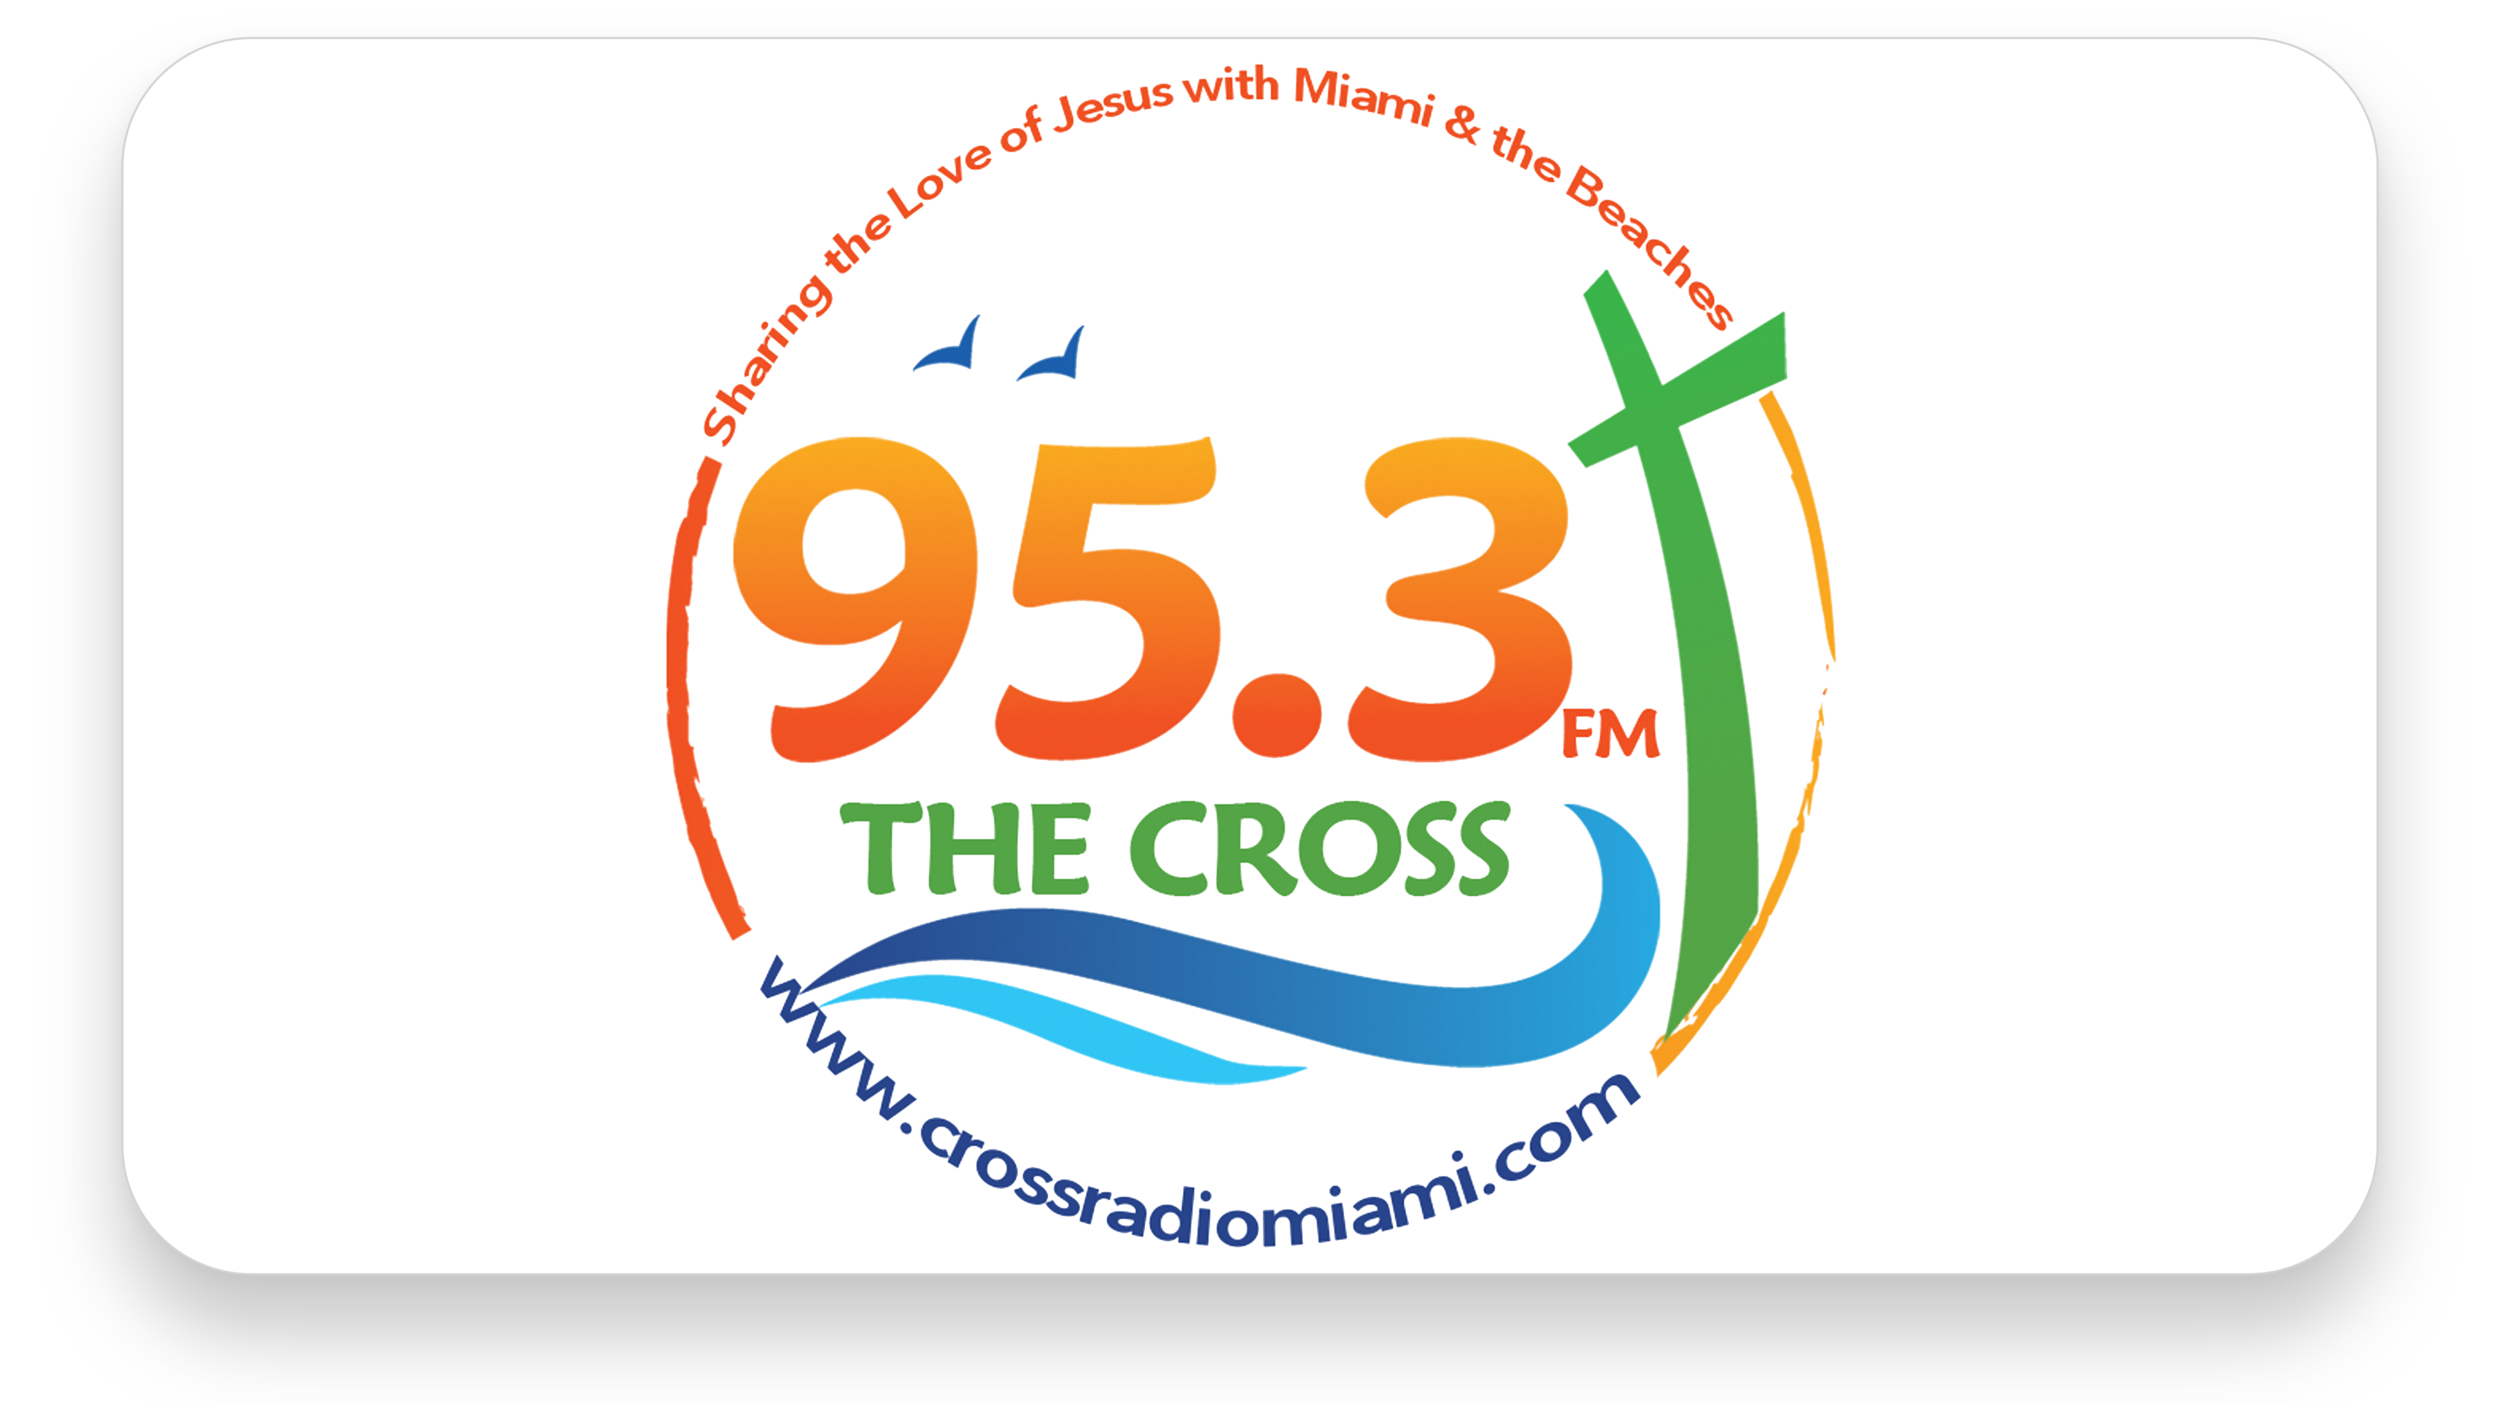 The Cross Radio   The Cross (95.3 WLJM LP-FM) is the radio outreach ministry of Calvary Chapel Miami Beach. We believe Jesus opened the door for this station so that His glory and love would be shared with the people of Miami and the Beaches. We aim to glorify Christ and equip His people to stay focused on Him.